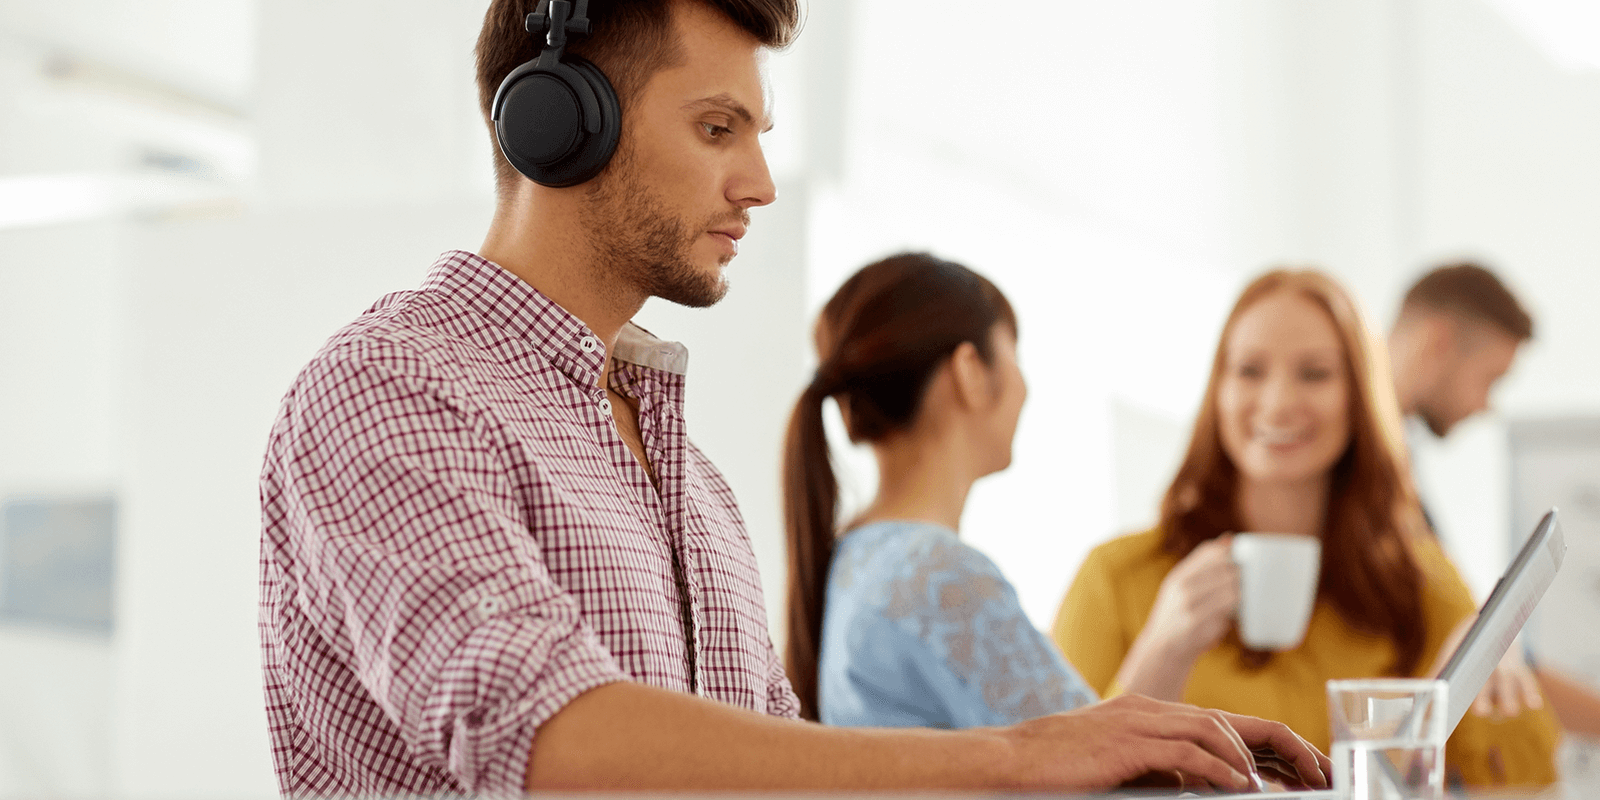 Surprising Results About Wearing Headphones at Work and Productivity | Work productivity, How to wear, Productivity